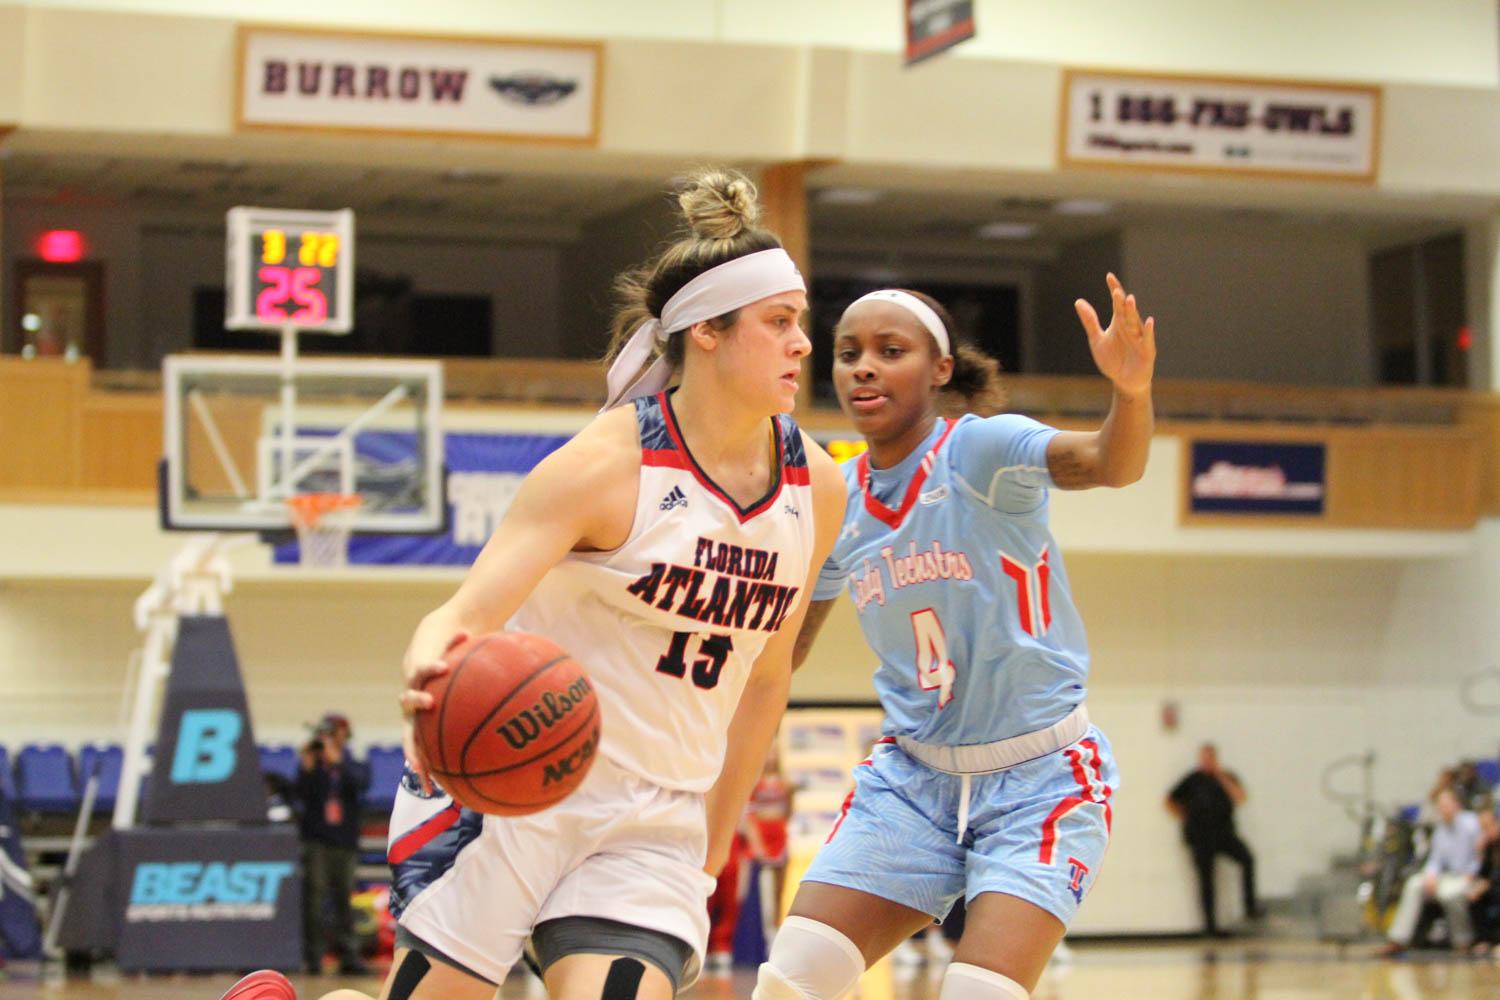 Junior Sasha Cedeno scored 19 points in the Owls loss to UTEP. Alexander Rodriguez   News Editor